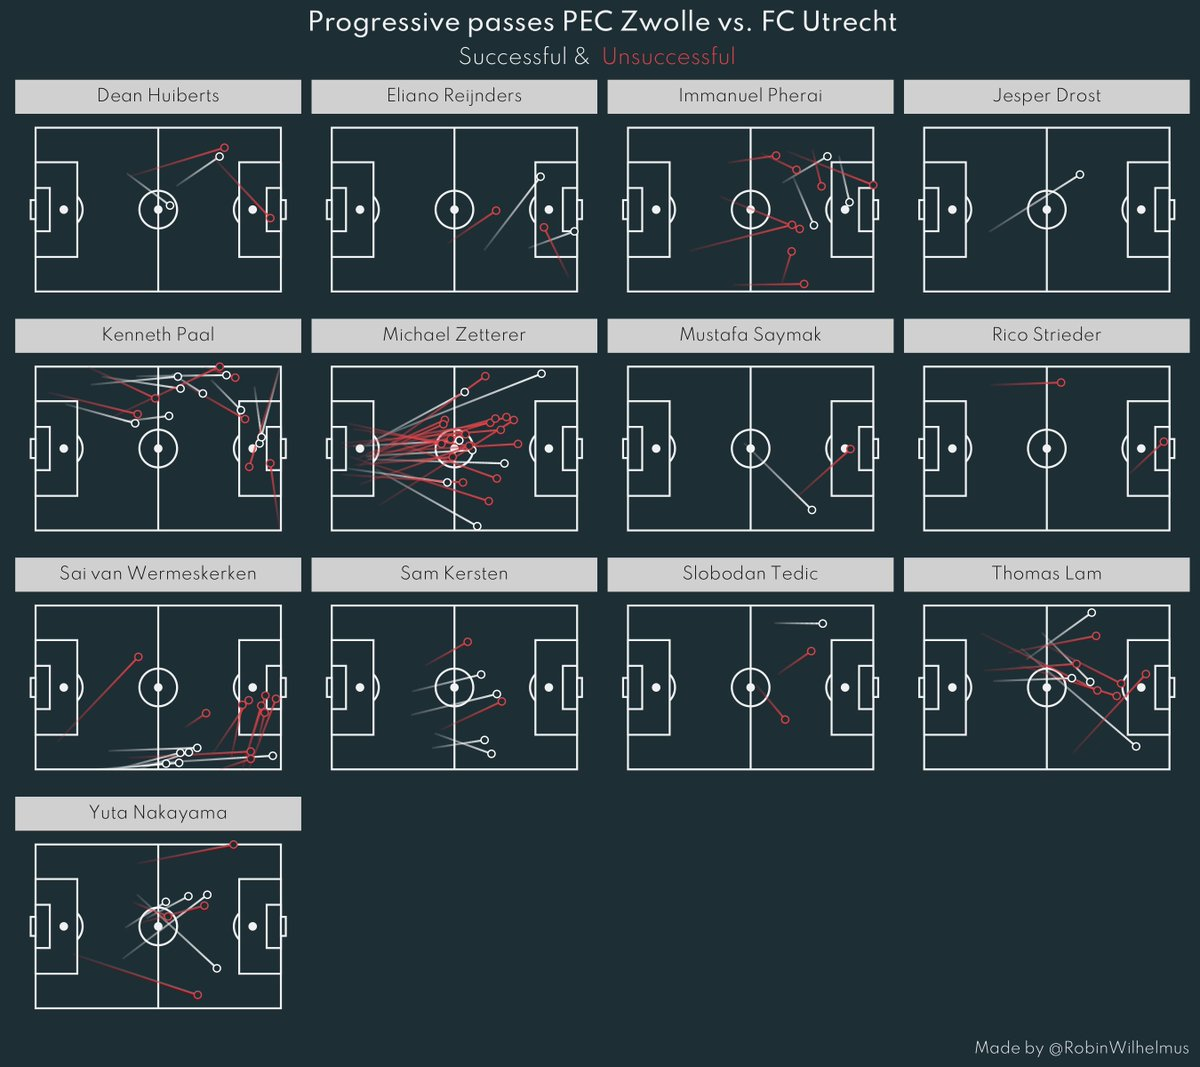 Progressive Passes and Pass Grid PEC Zwolle - FC Utrecht 1-1  #Eredivisie #pecutr #rstats https://t.co/iAwPXzXNc0